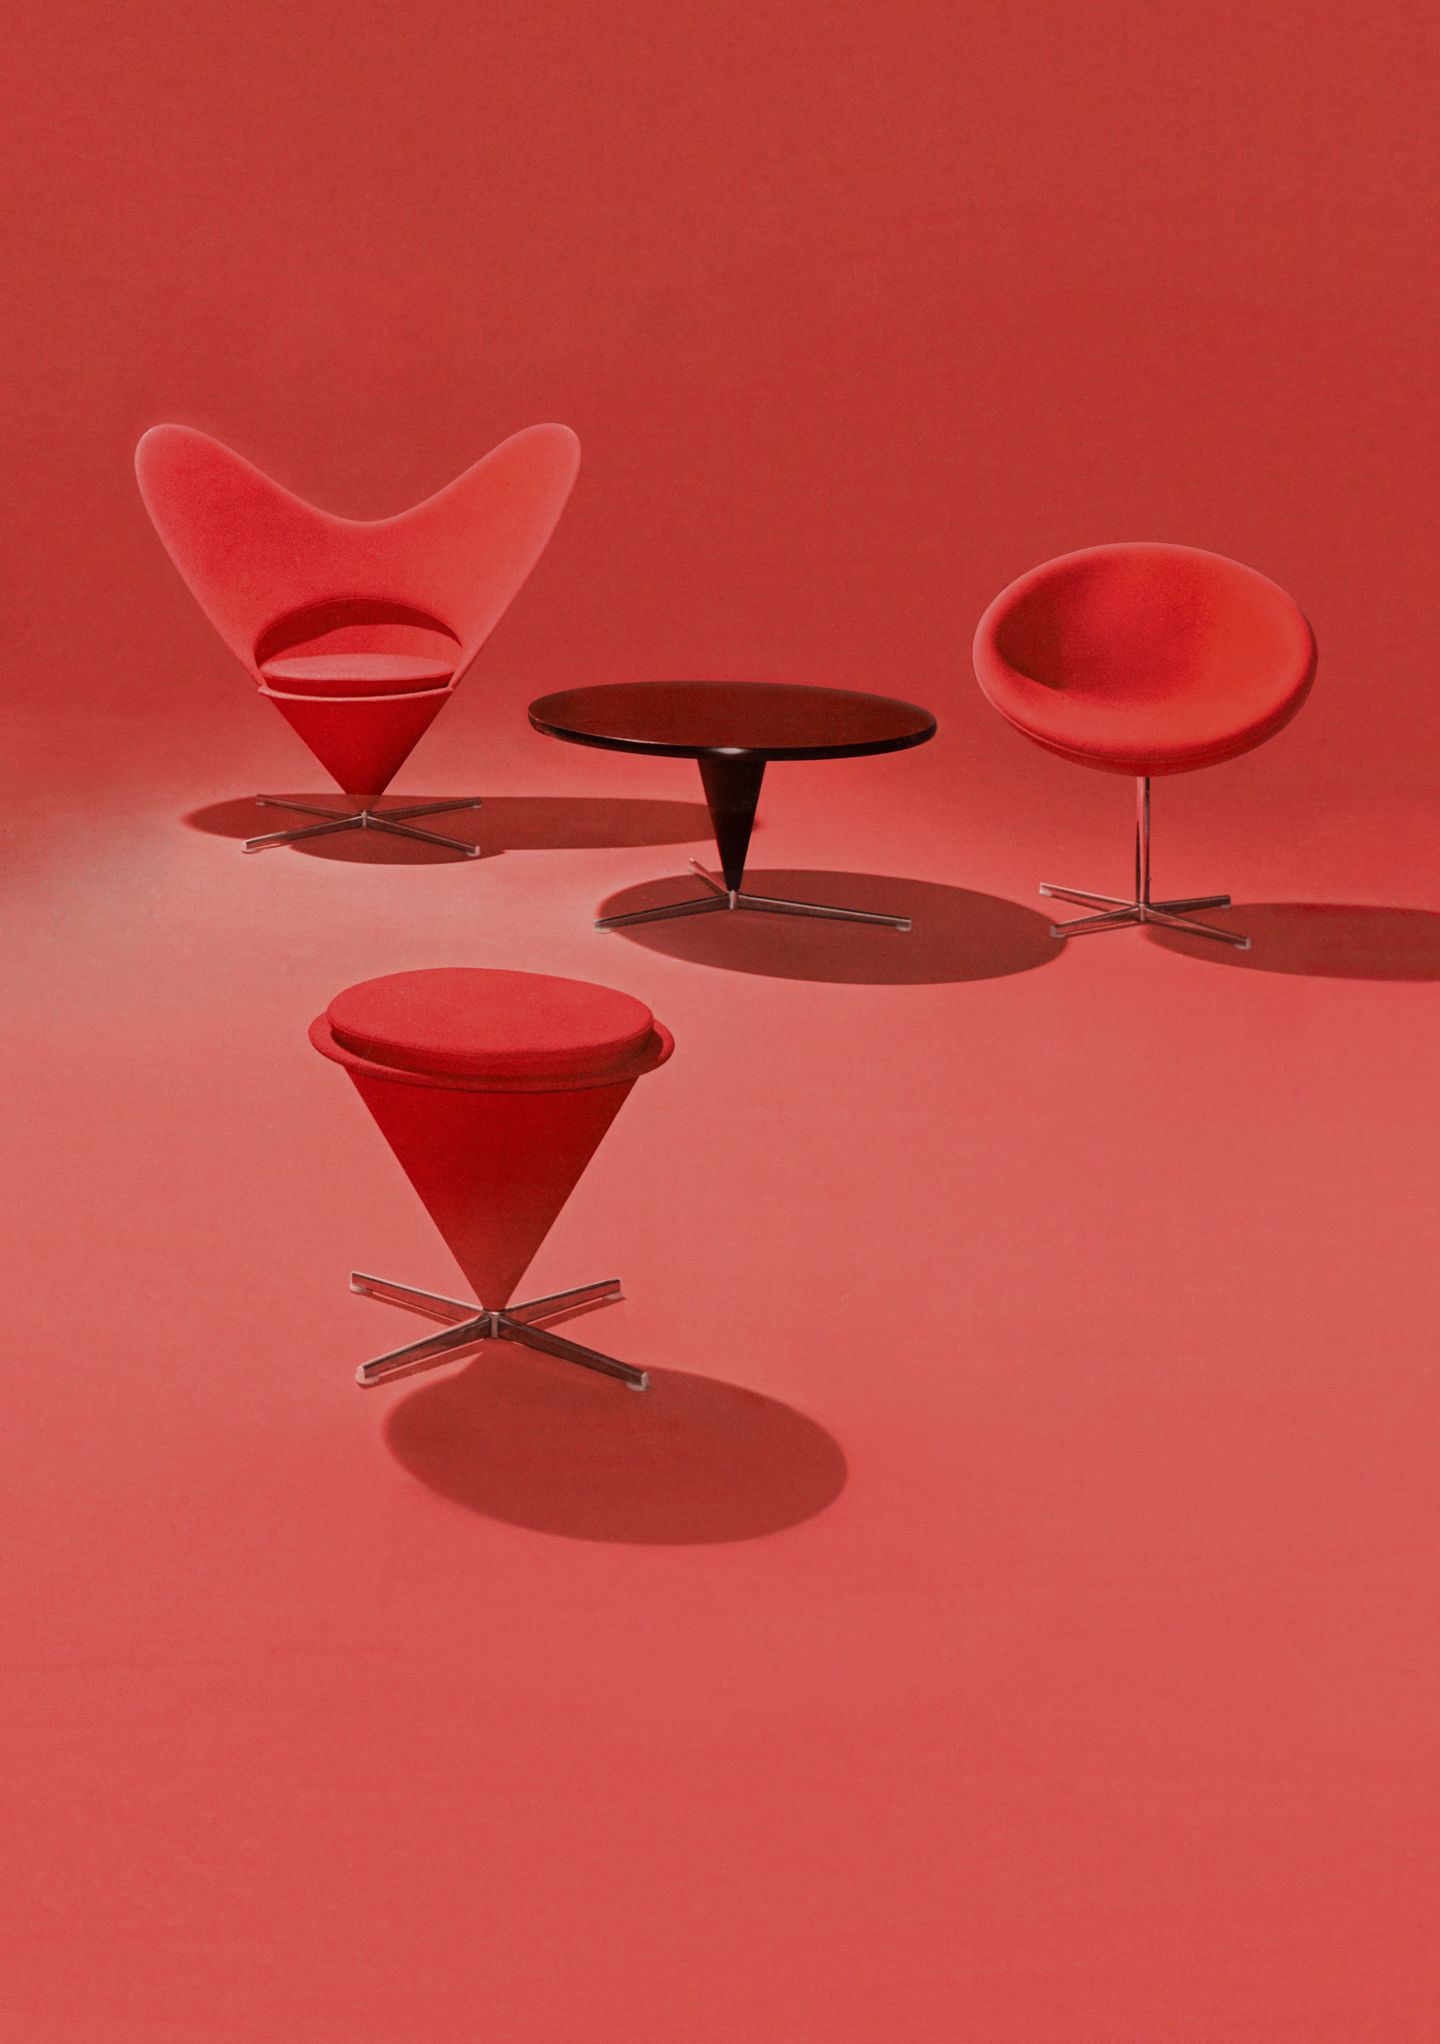 Astounding Vitra The Original Is By Vitra Cone Chair Uwap Interior Chair Design Uwaporg